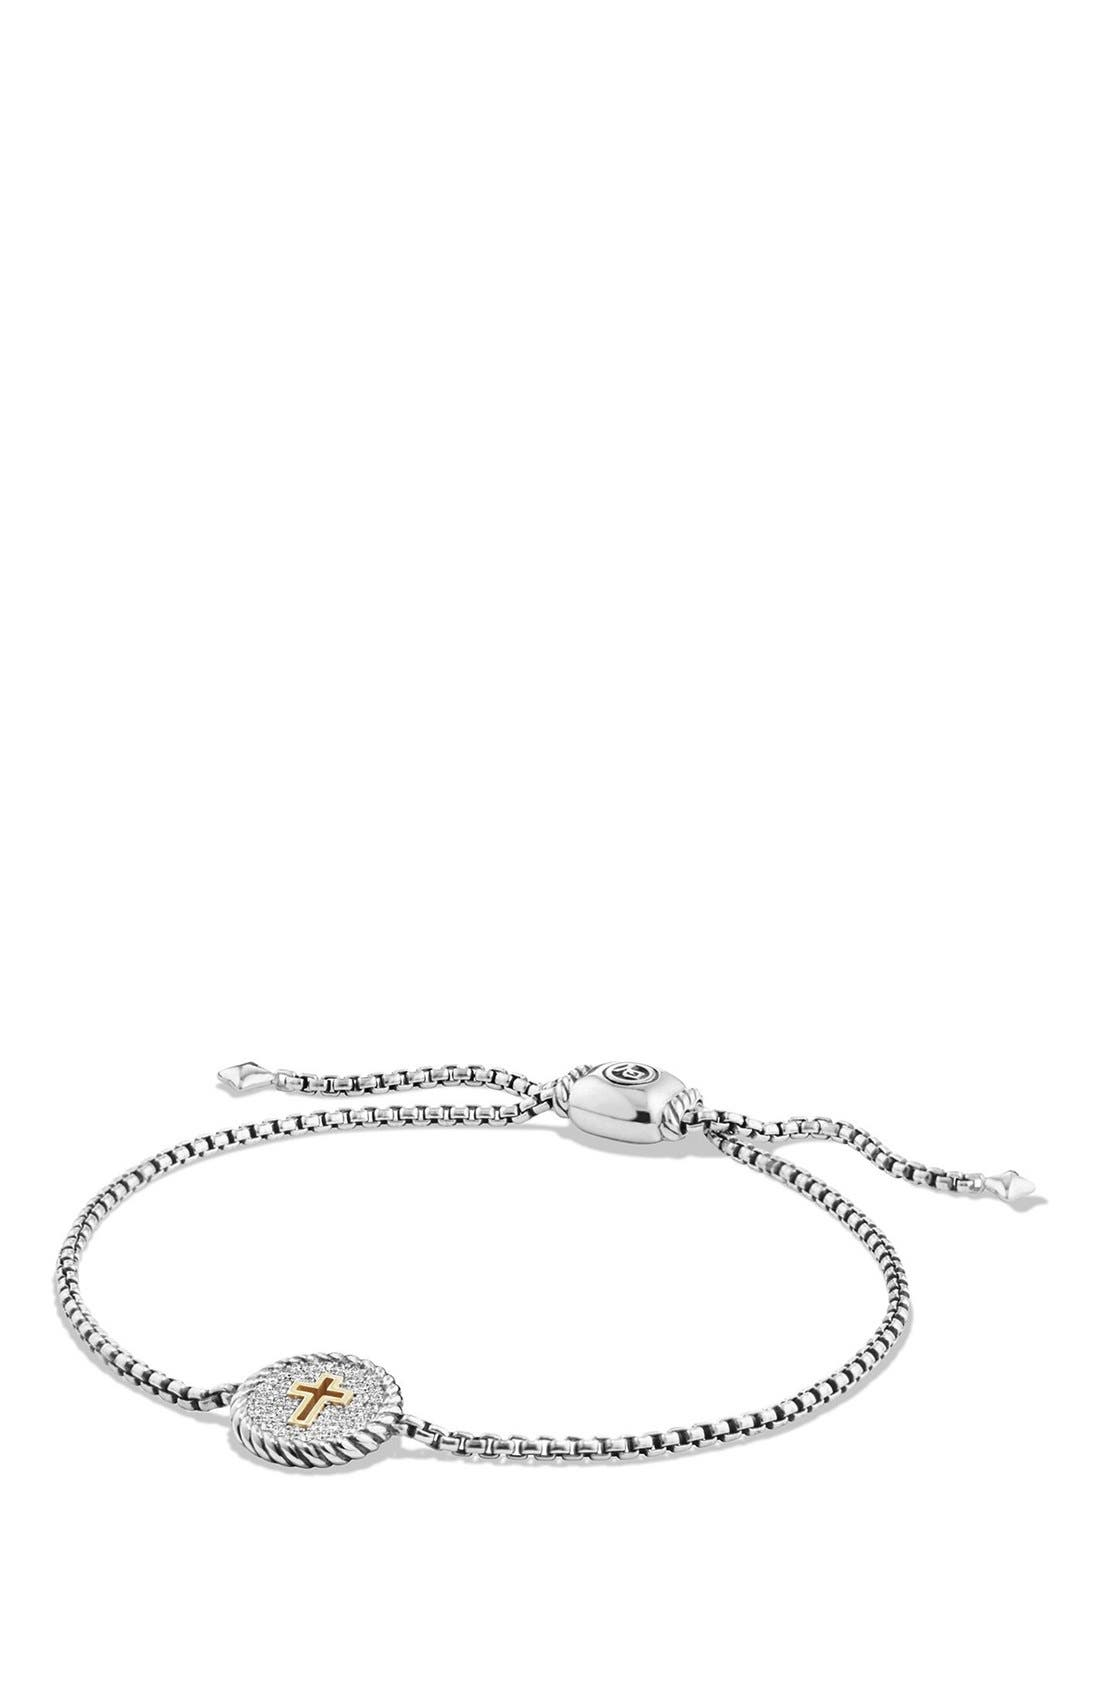 Alternate Image 1 Selected - David Yurman 'Cable Collectibles' Cross Charm Bracelet with Diamonds